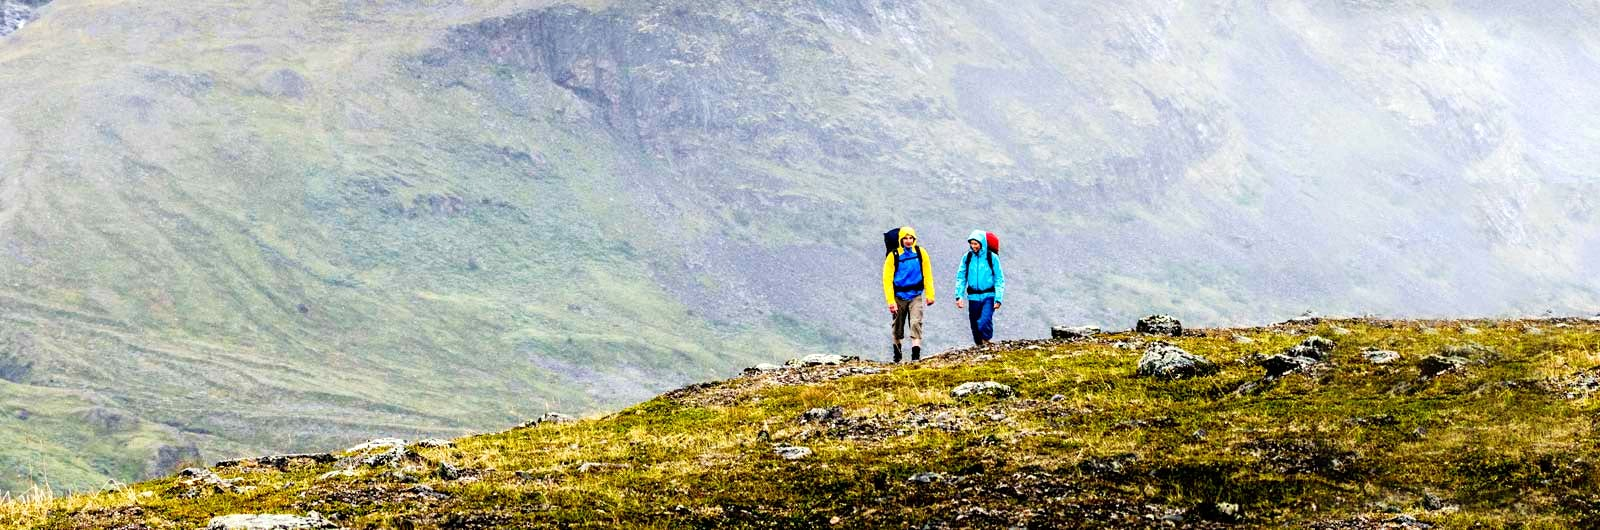 Hikers walking on Padjelanta Trail